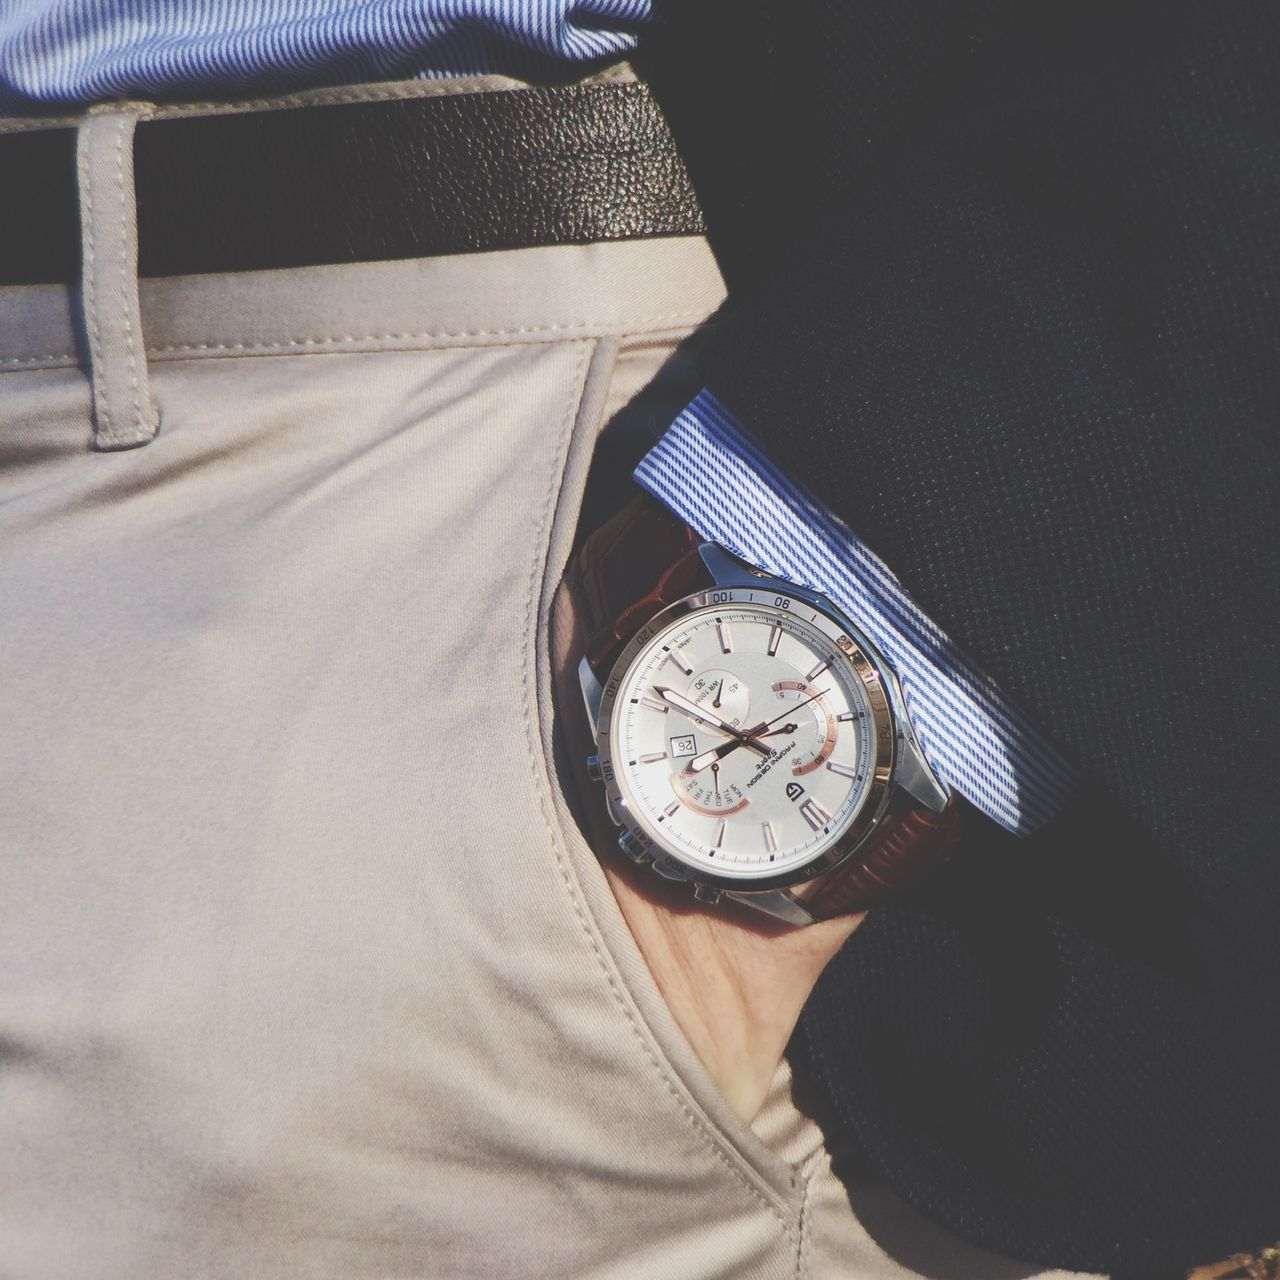 Beautiful stock photos of uhren, clock, time, one person, adults only